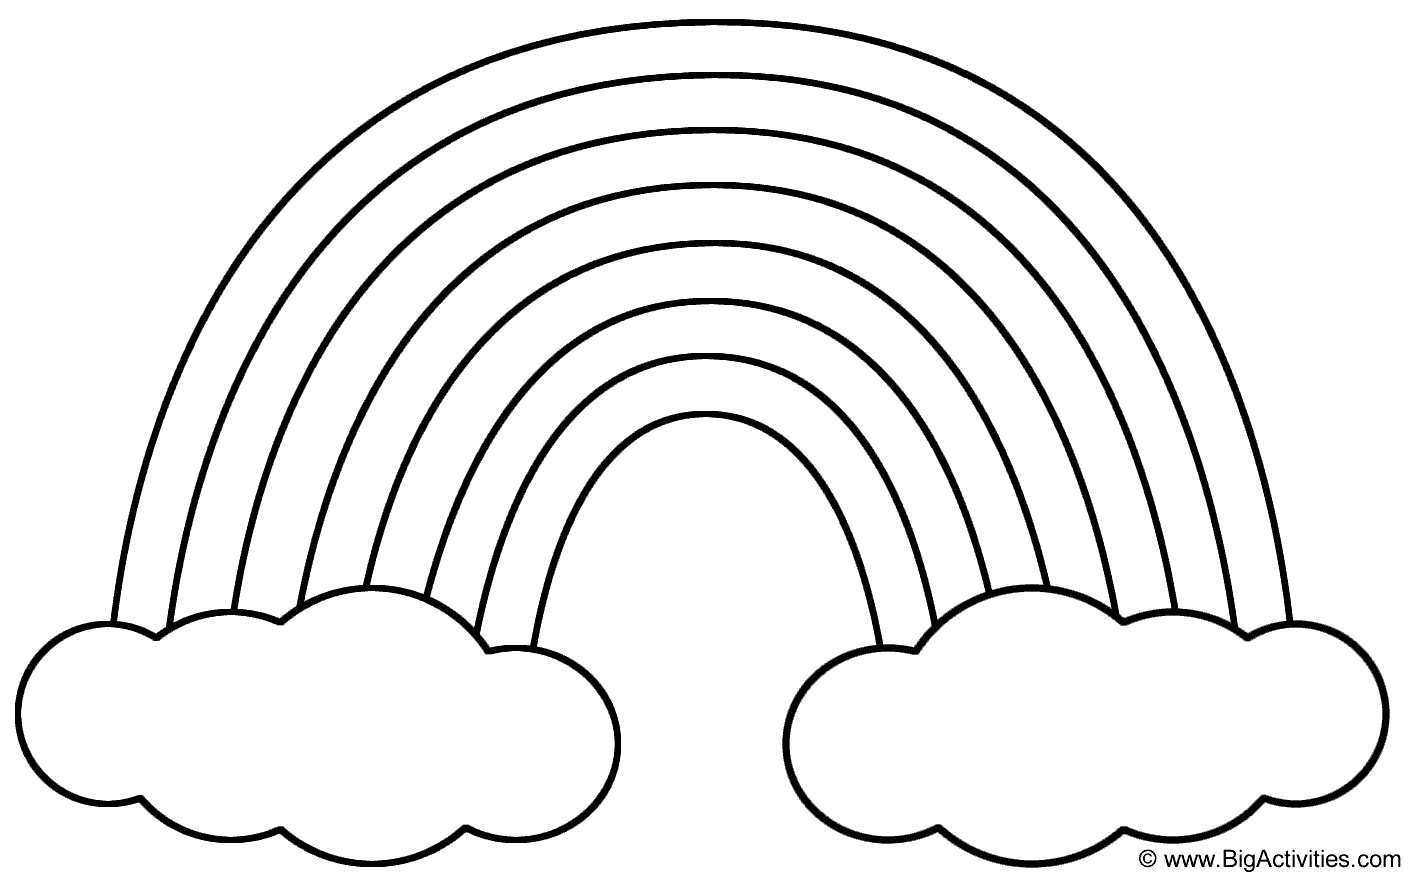 coloring rainbows rainbow coloring pages download and print rainbow rainbows coloring